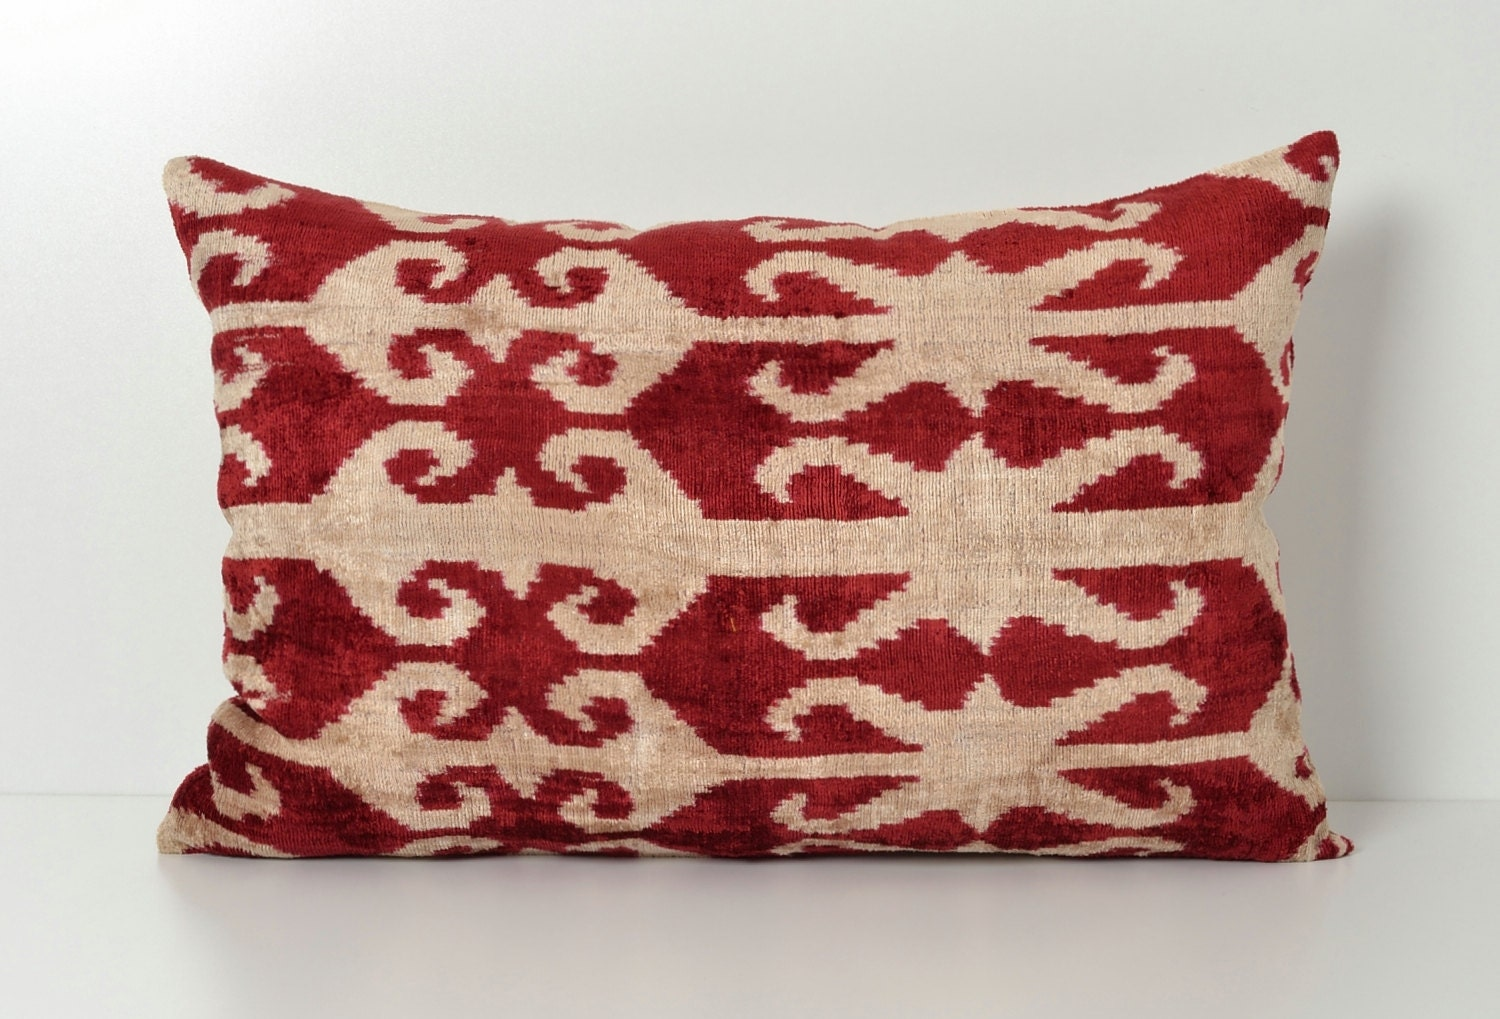 Red Ikat Pillow Ikat Lumbar Pillow Red Decorative Pillows